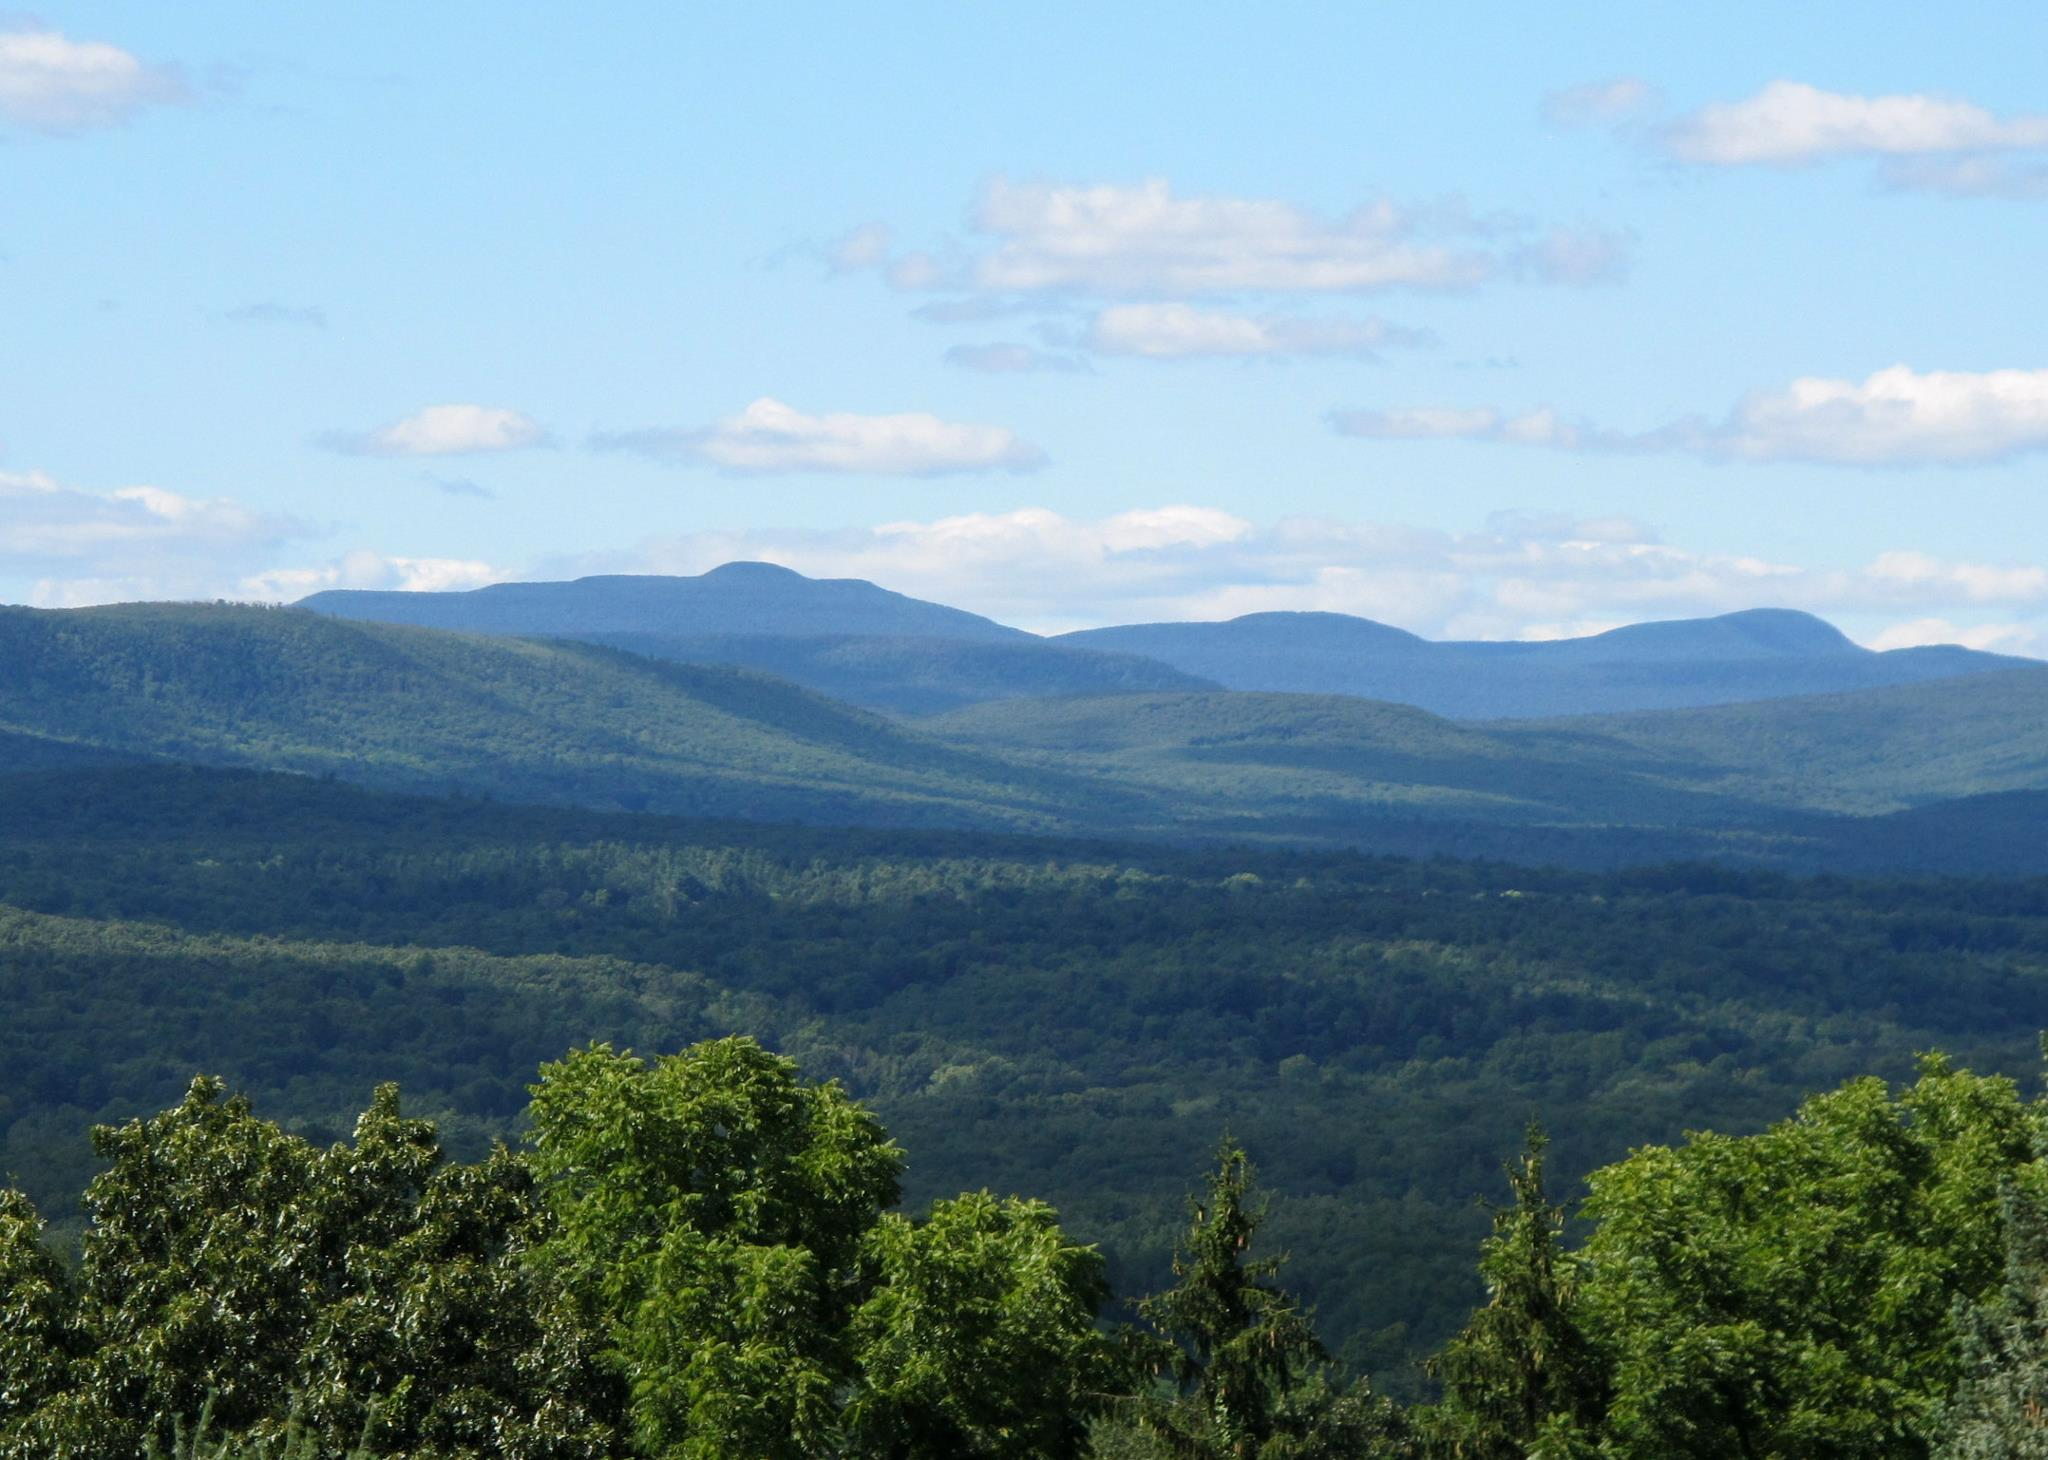 Catskills-view-from-Soyuzivka.jpg